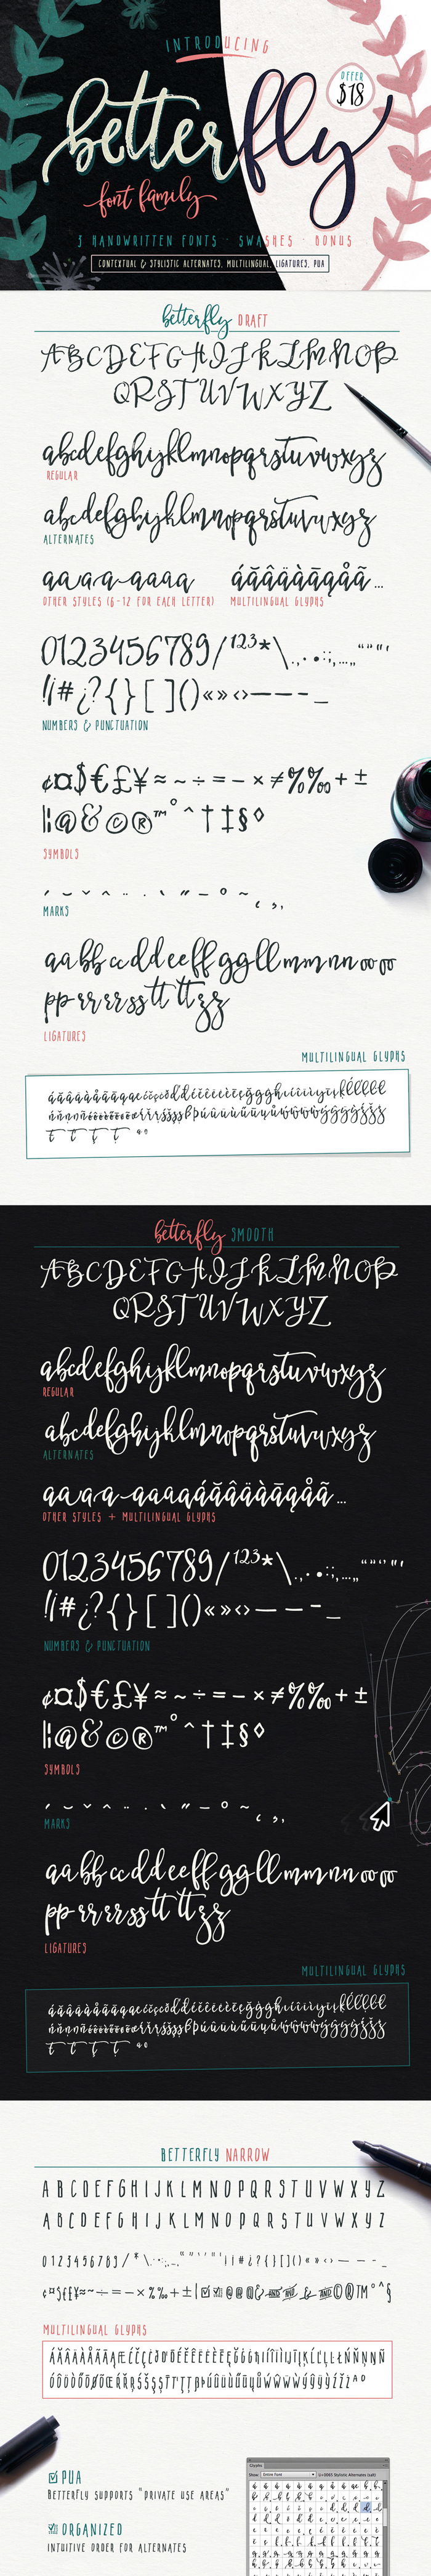 The Hungry JPEG's Jam Packed January Bundle: Betterfly Font